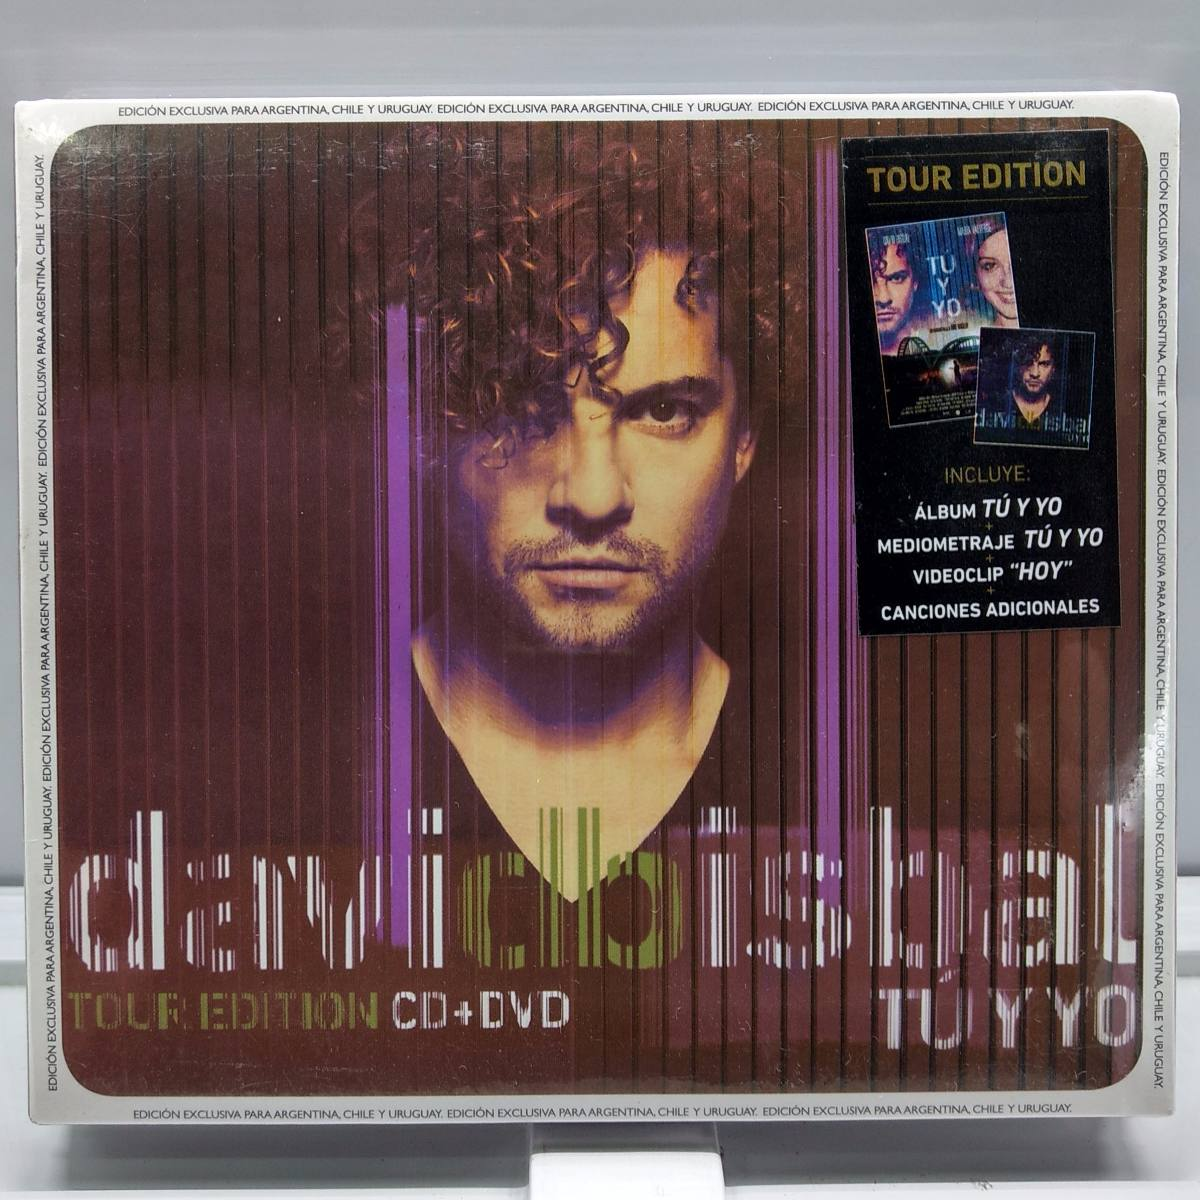 La Voz Libre David Bisbal Cd Dvd Nuevo Sellado David Bisbal Tu Y Yo Tour Edition